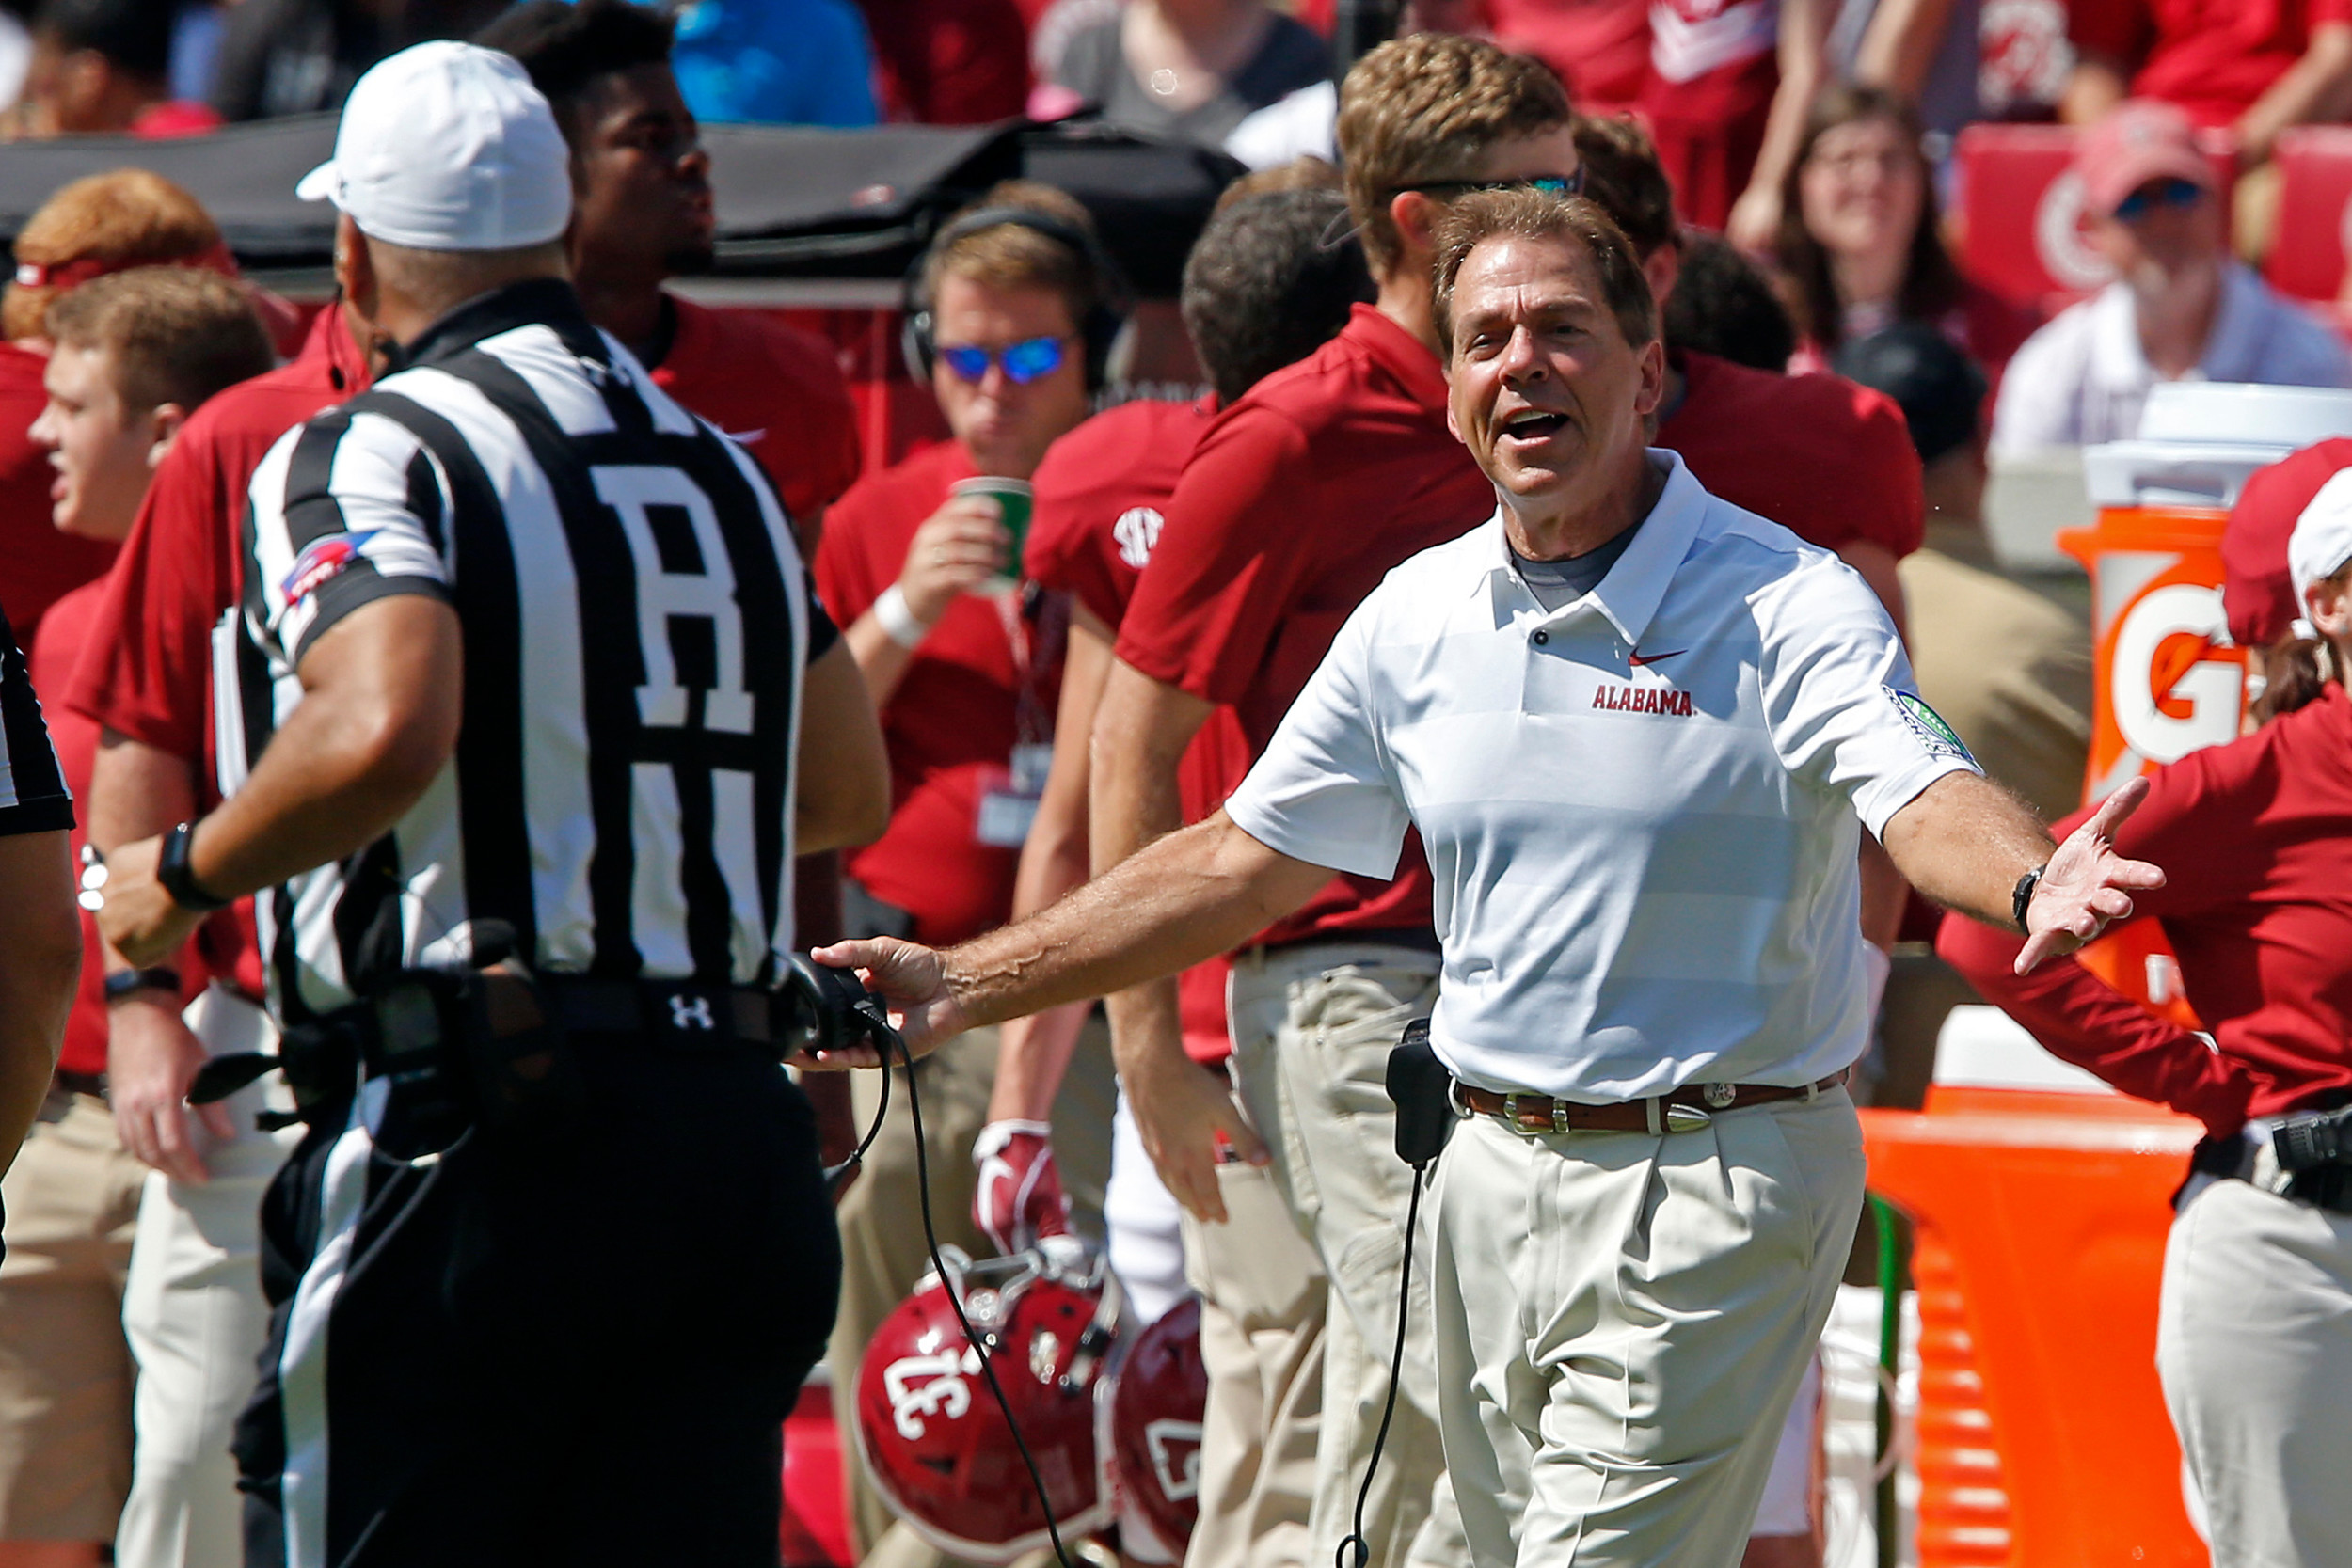 During the review of a targeting call on Alabama, Nick Saban had some remarks for the official, at Bryant-Denny Stadium in Tuscaloosa, Al on September 29, 2018. Jason Clark / Daily Mountain Eagle